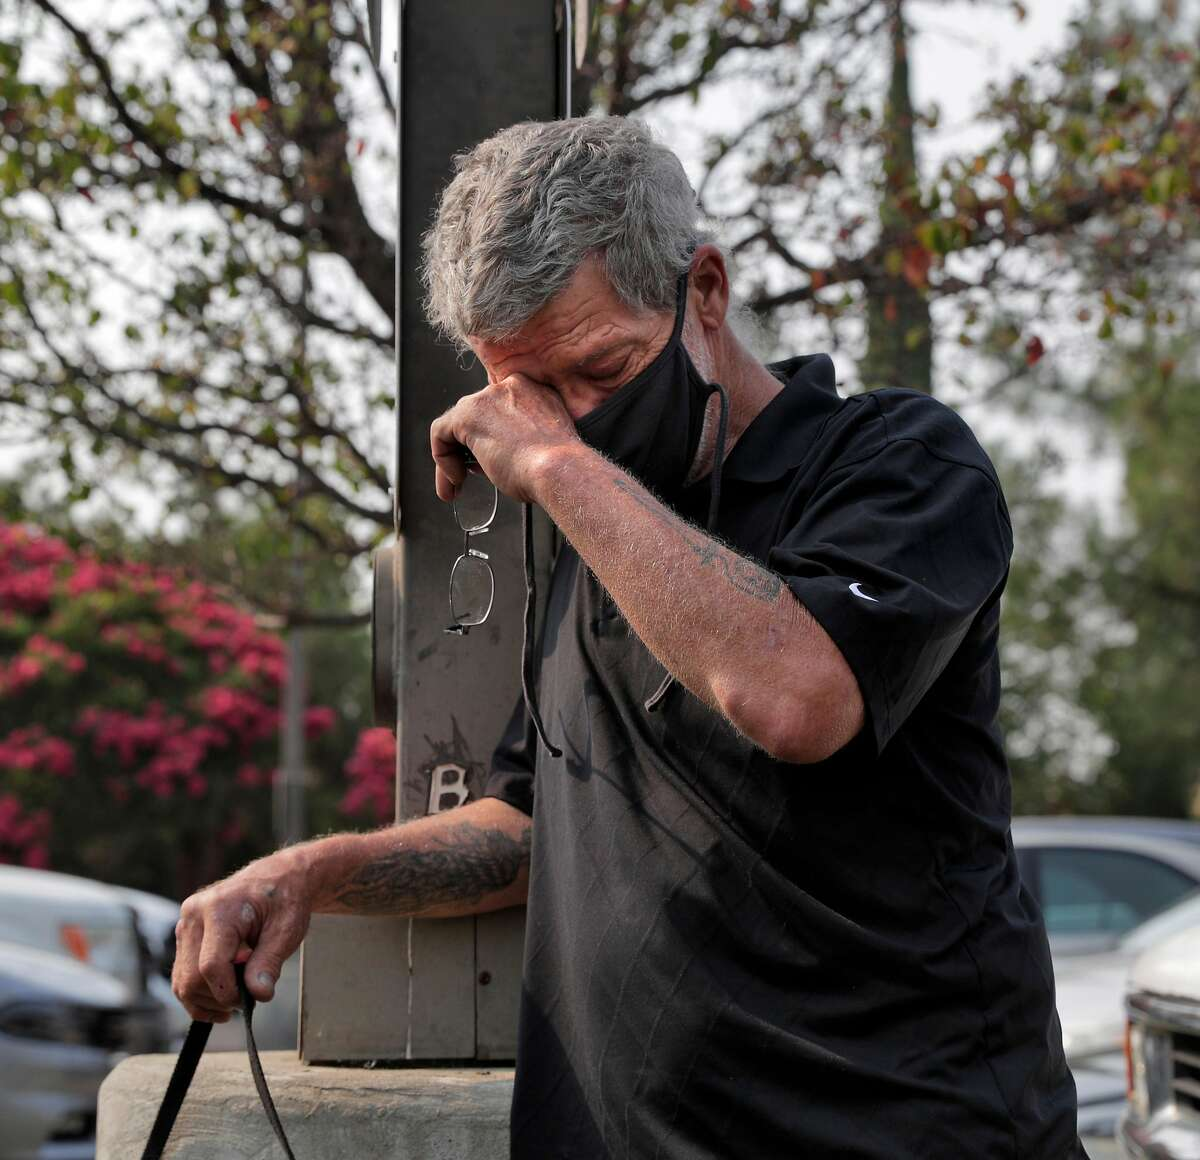 David Mackert wipes his eyes as he recollects the devastation to his friend's ranch in the parking lot at the Extended Stay America where he evacuated as the local fires continued to keep people from returning to their home in Fairfield, Calif., on Monday, August 24, 2020.